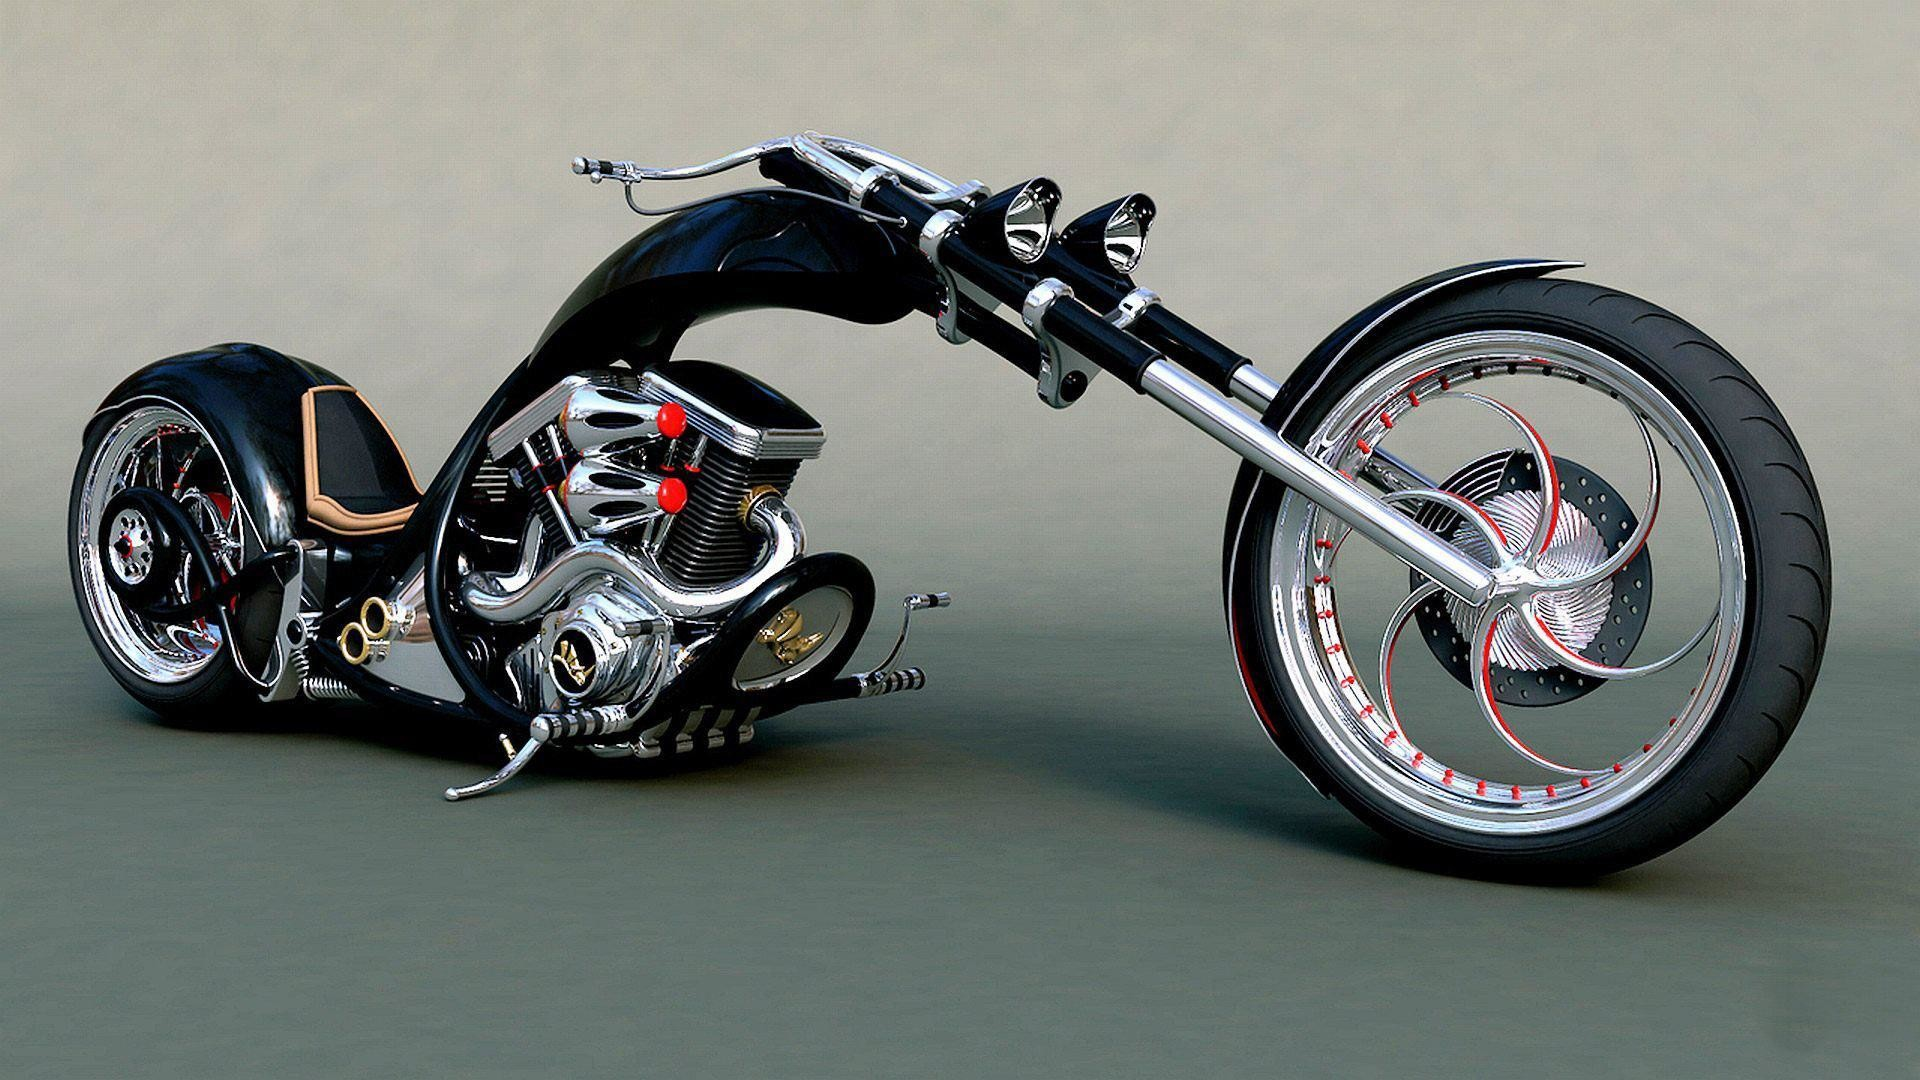 1920x1080 Chopper Bike Tuning Motorbike Motorcycle Hot Rod Rods Custom Desktop  Background Images